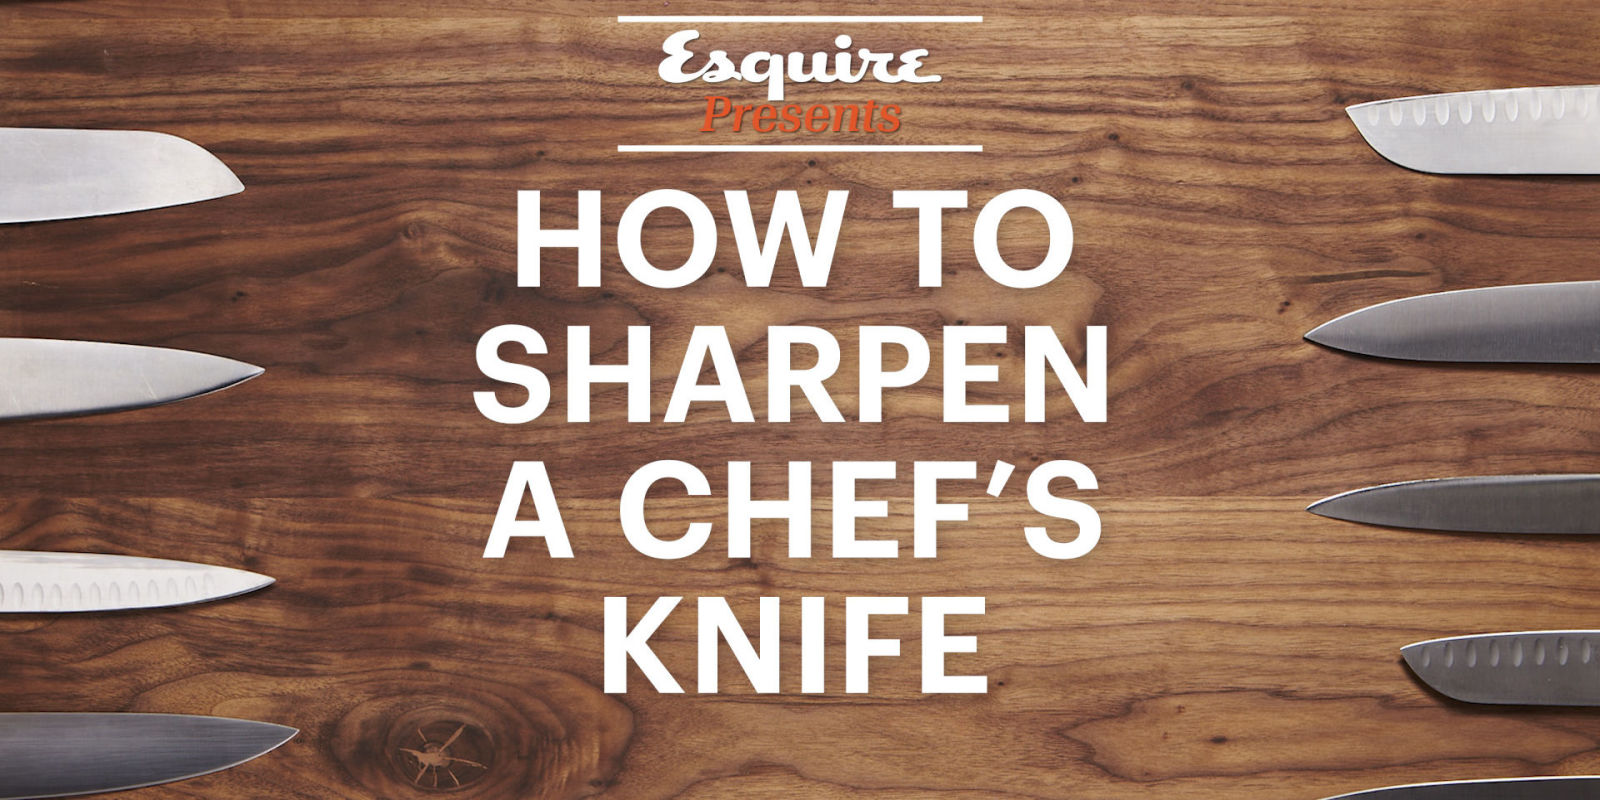 how to sharpen knife how to sharpen a chef 39 s knife. Black Bedroom Furniture Sets. Home Design Ideas